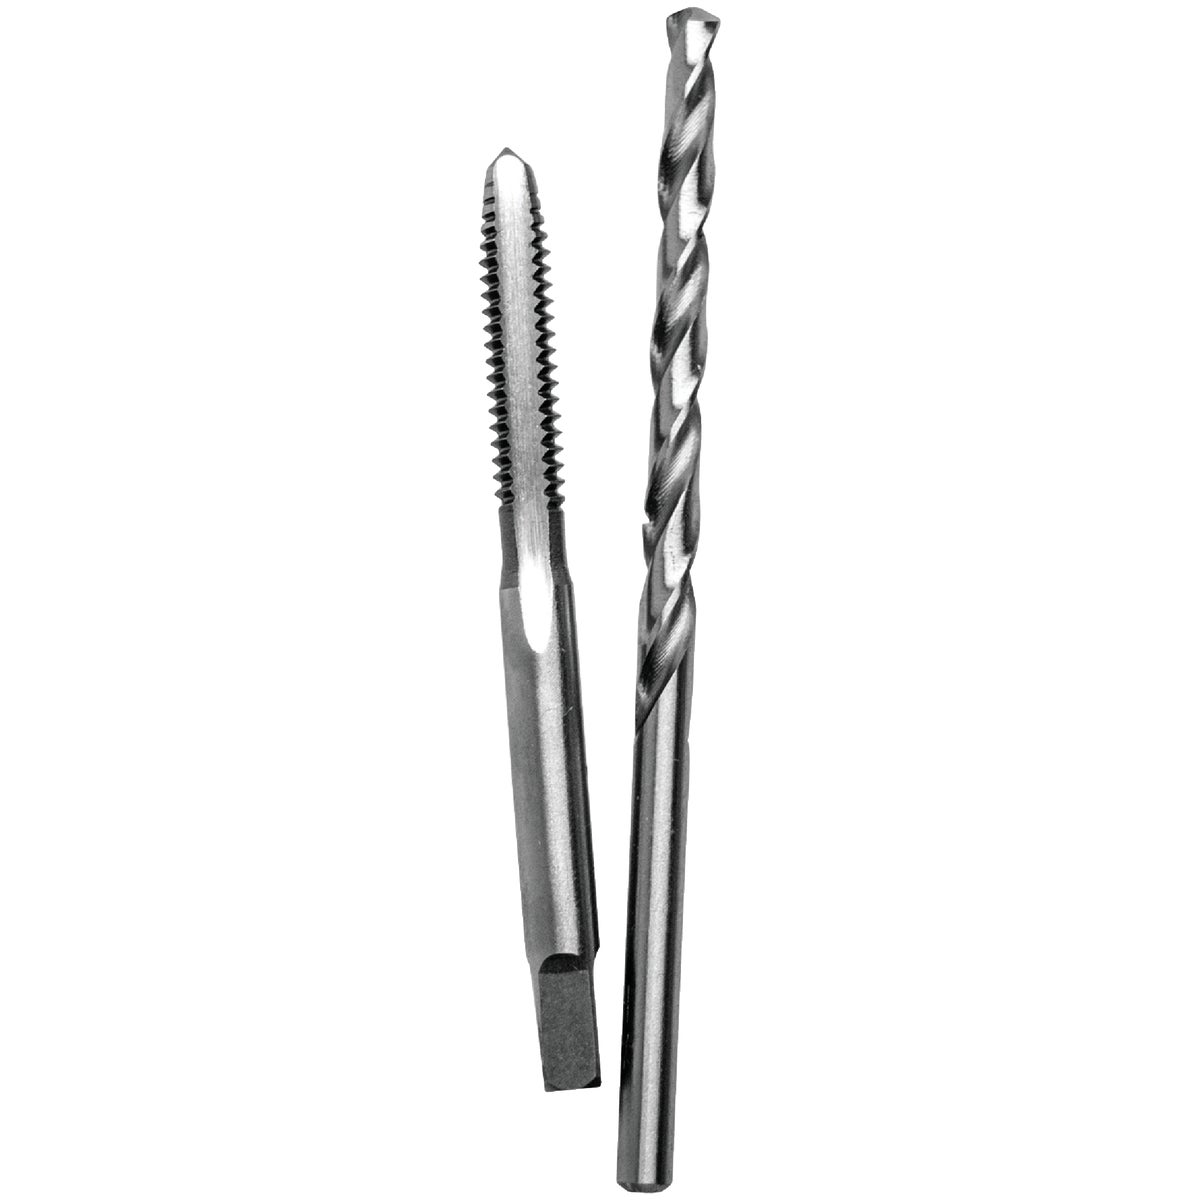 10-24 TAP & DRILL SET - 80220 by Irwin Industr Tool